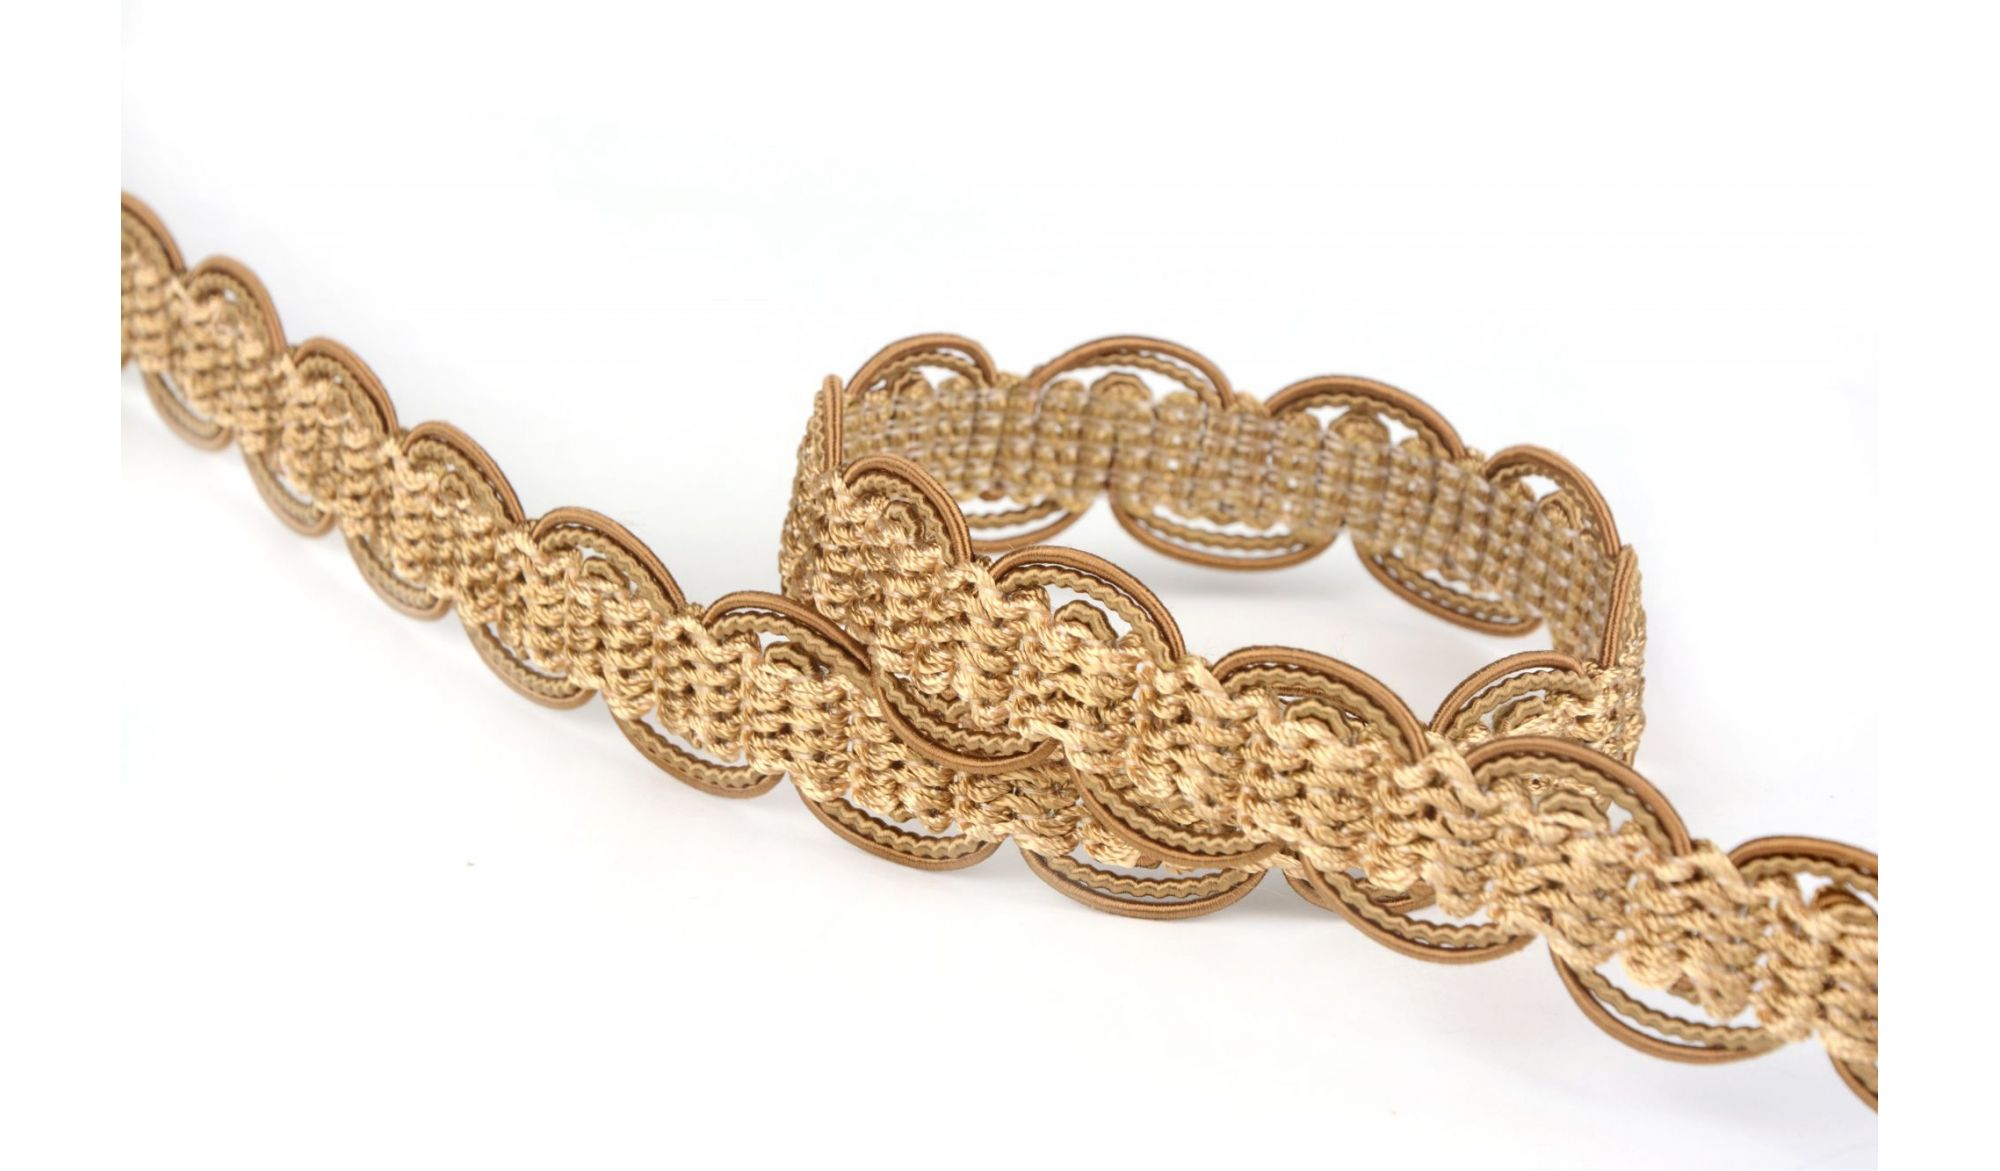 BRAIDED TAPE AG.387E Gold - Trimmings alt_pasmanteria_kolor_gold decorative Upholstery - Colour